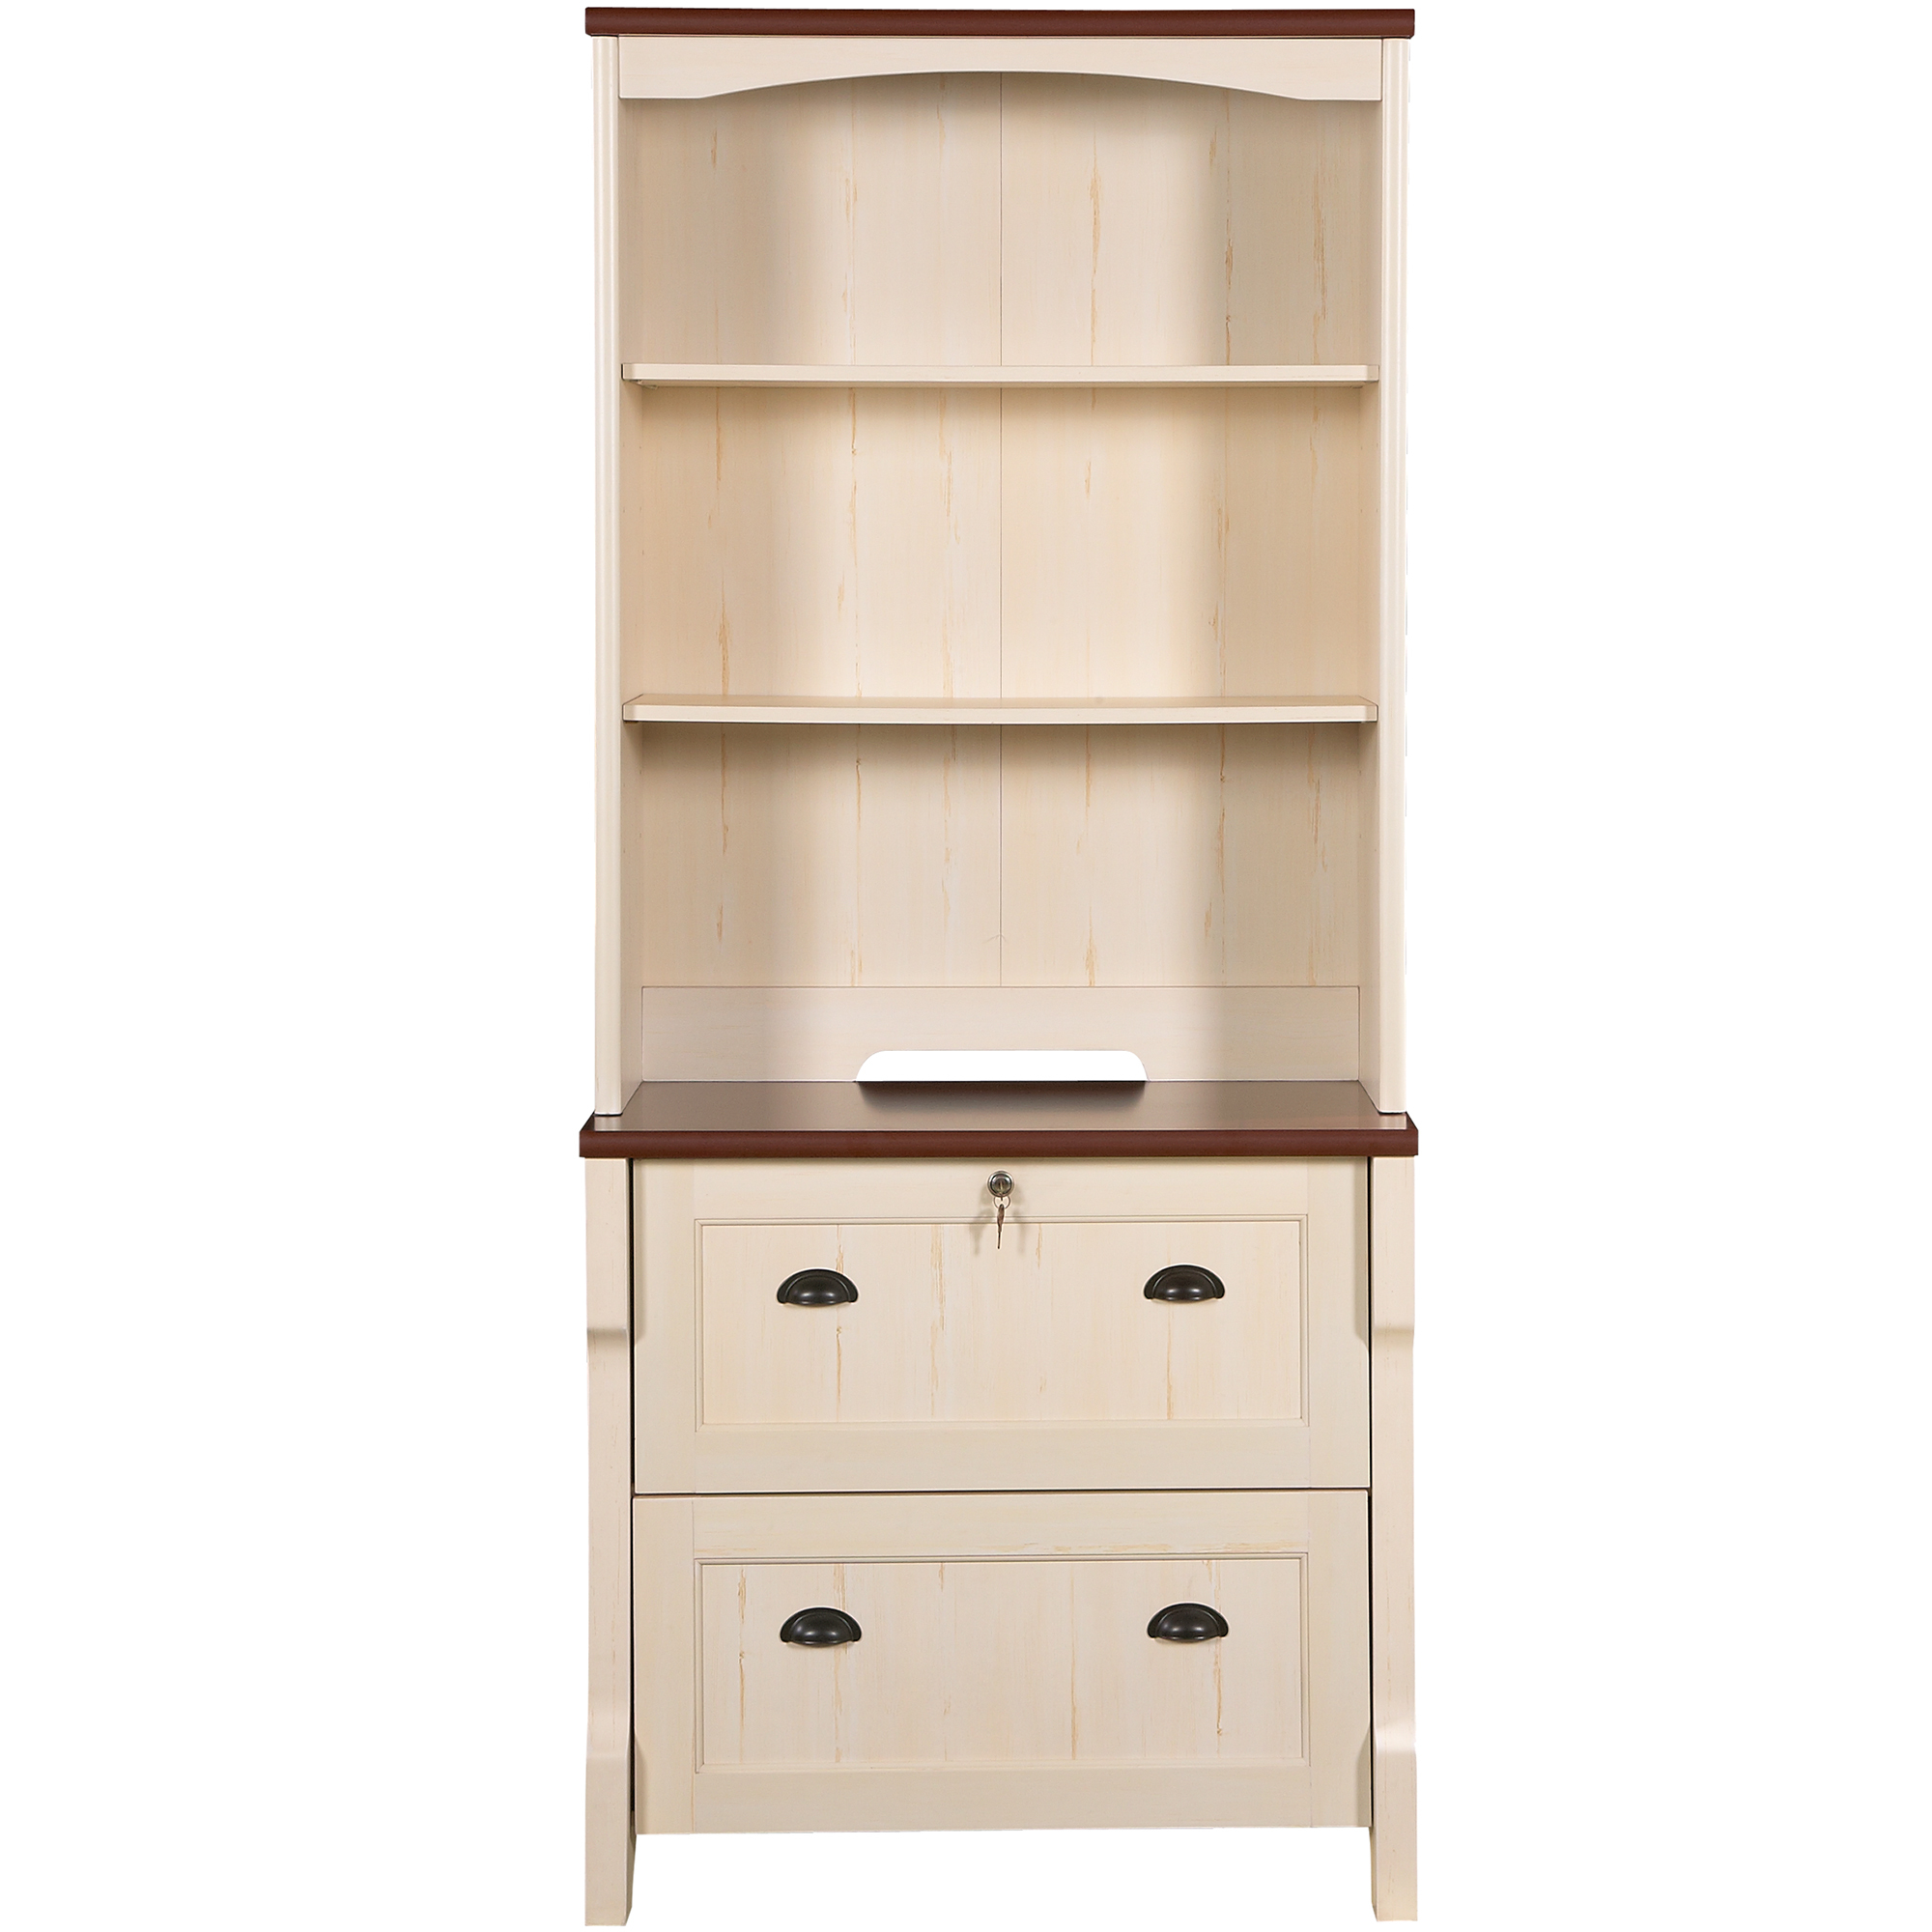 en drawer di null file shop front cabinets filecabinets cabinet us allen furniture homeoffice ethan filing storage